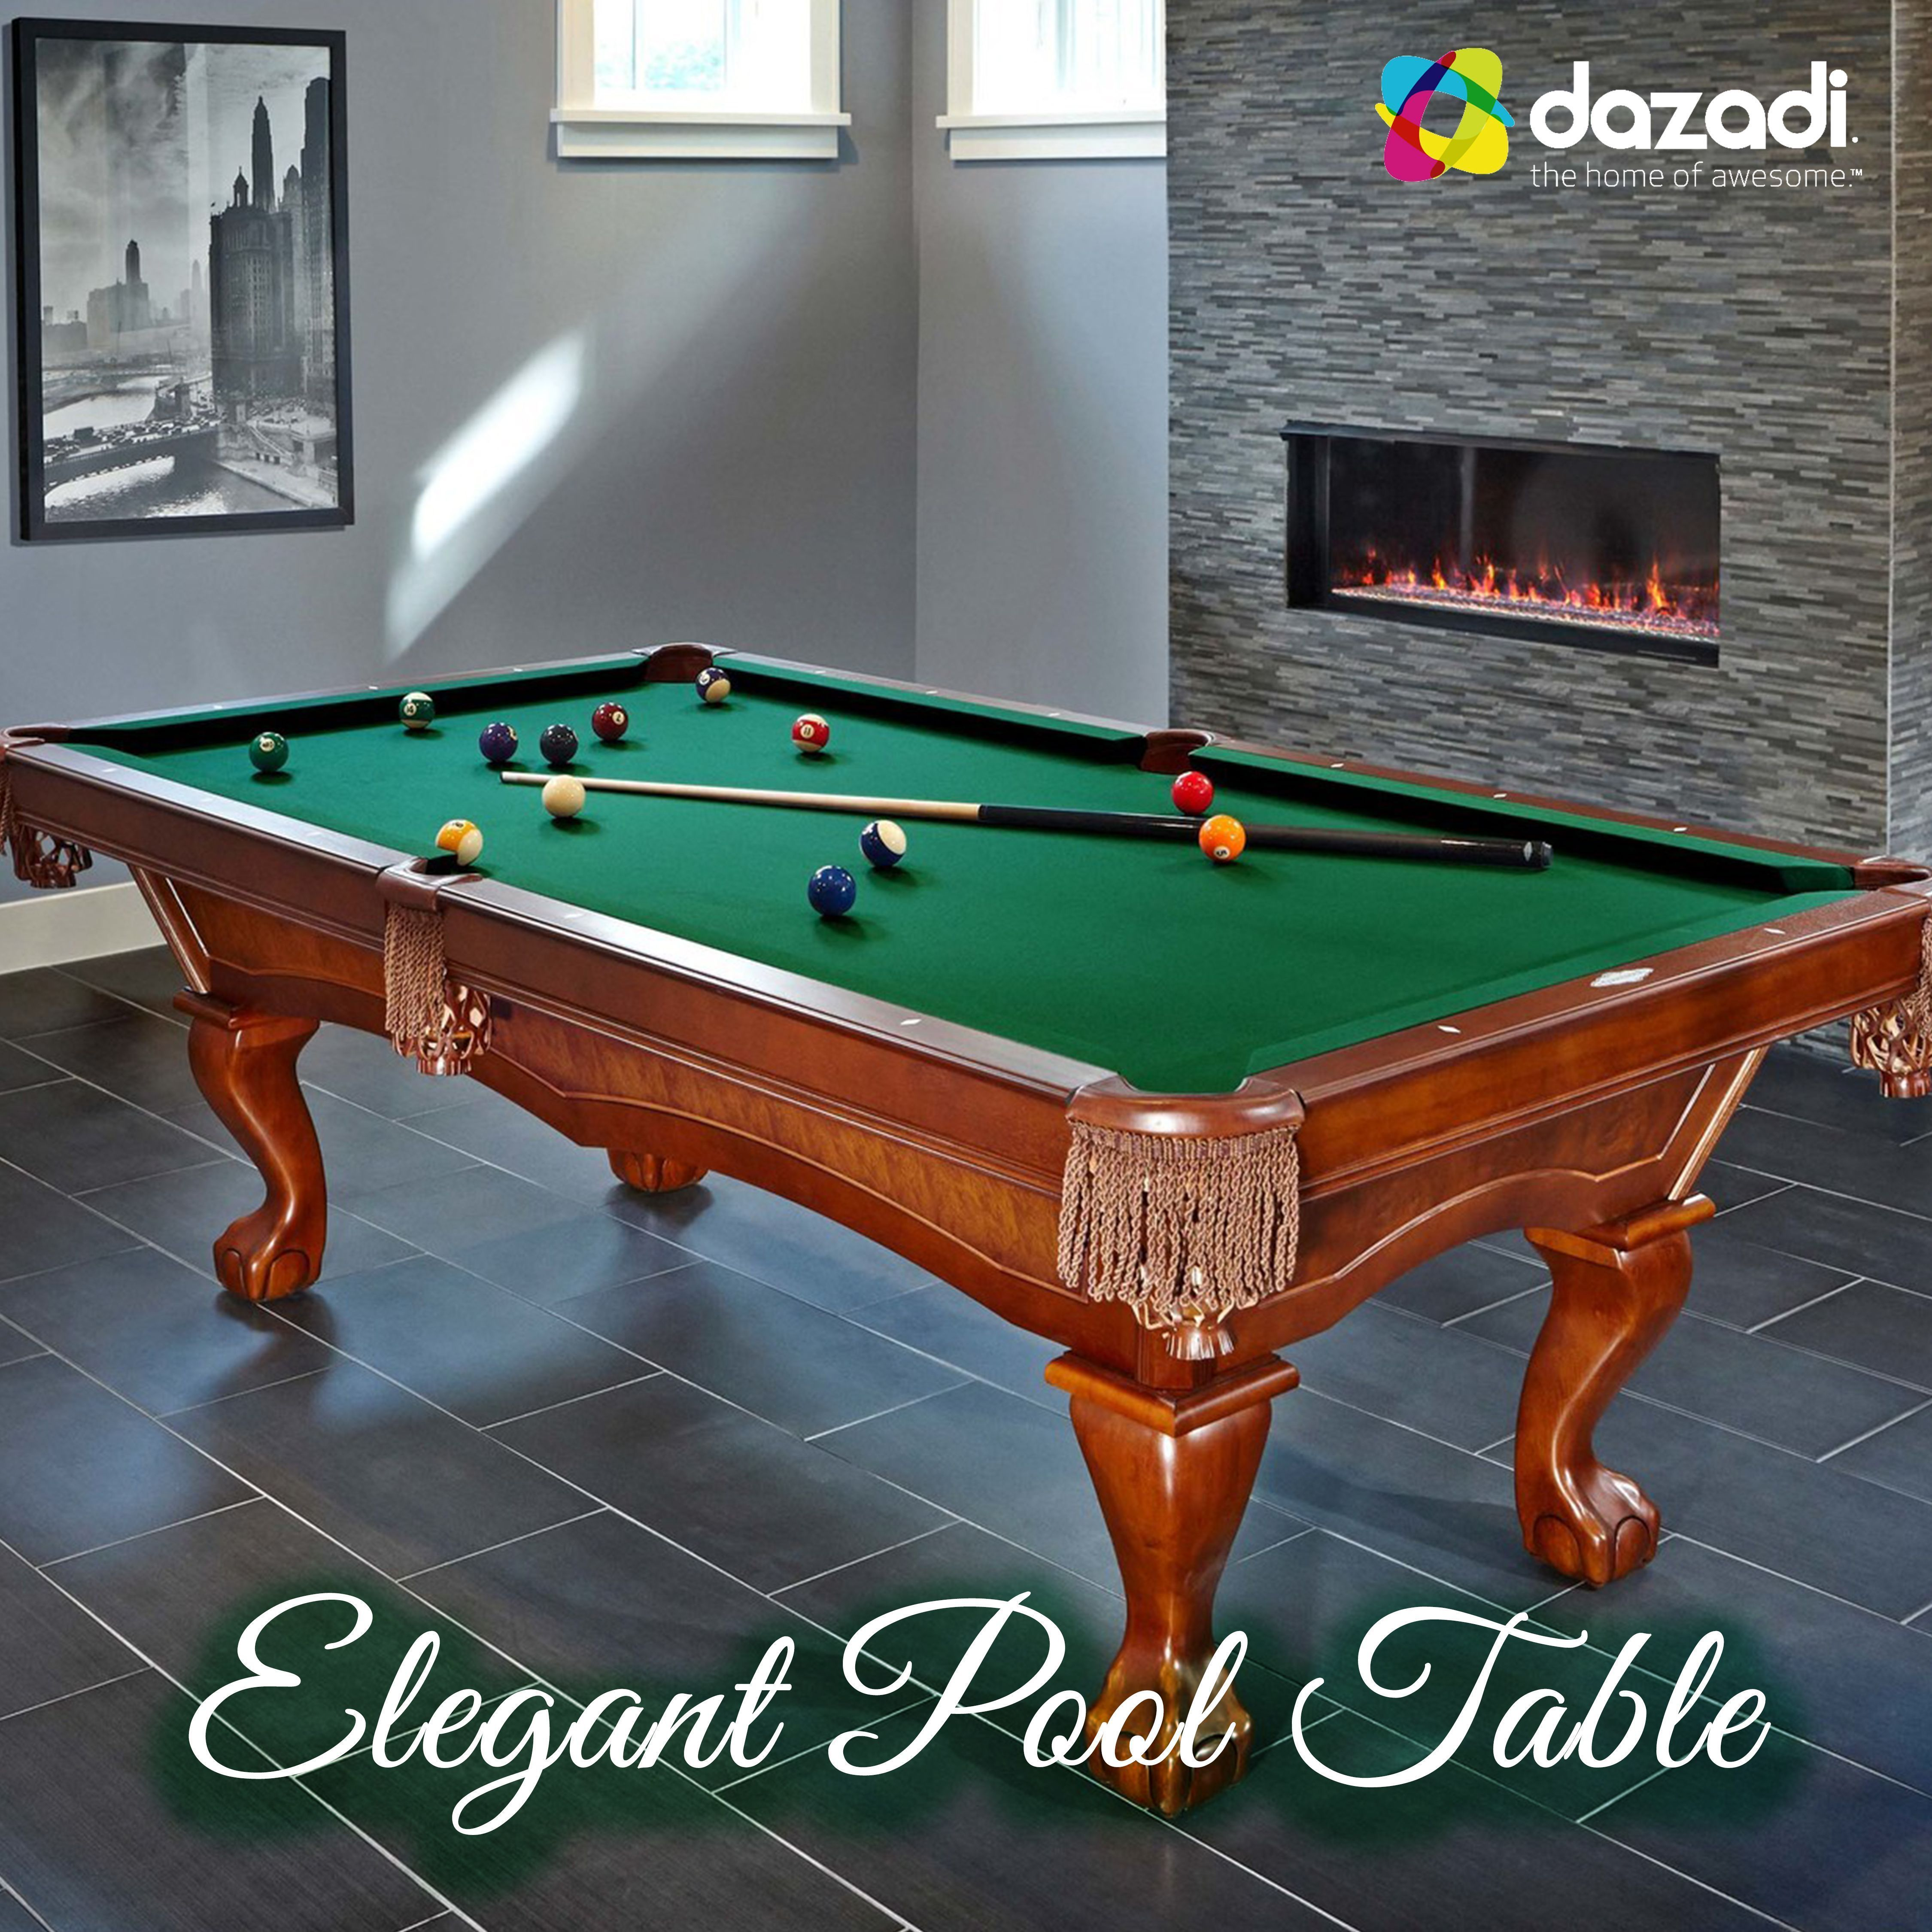 Invite your friends over to an exciting game of pool with